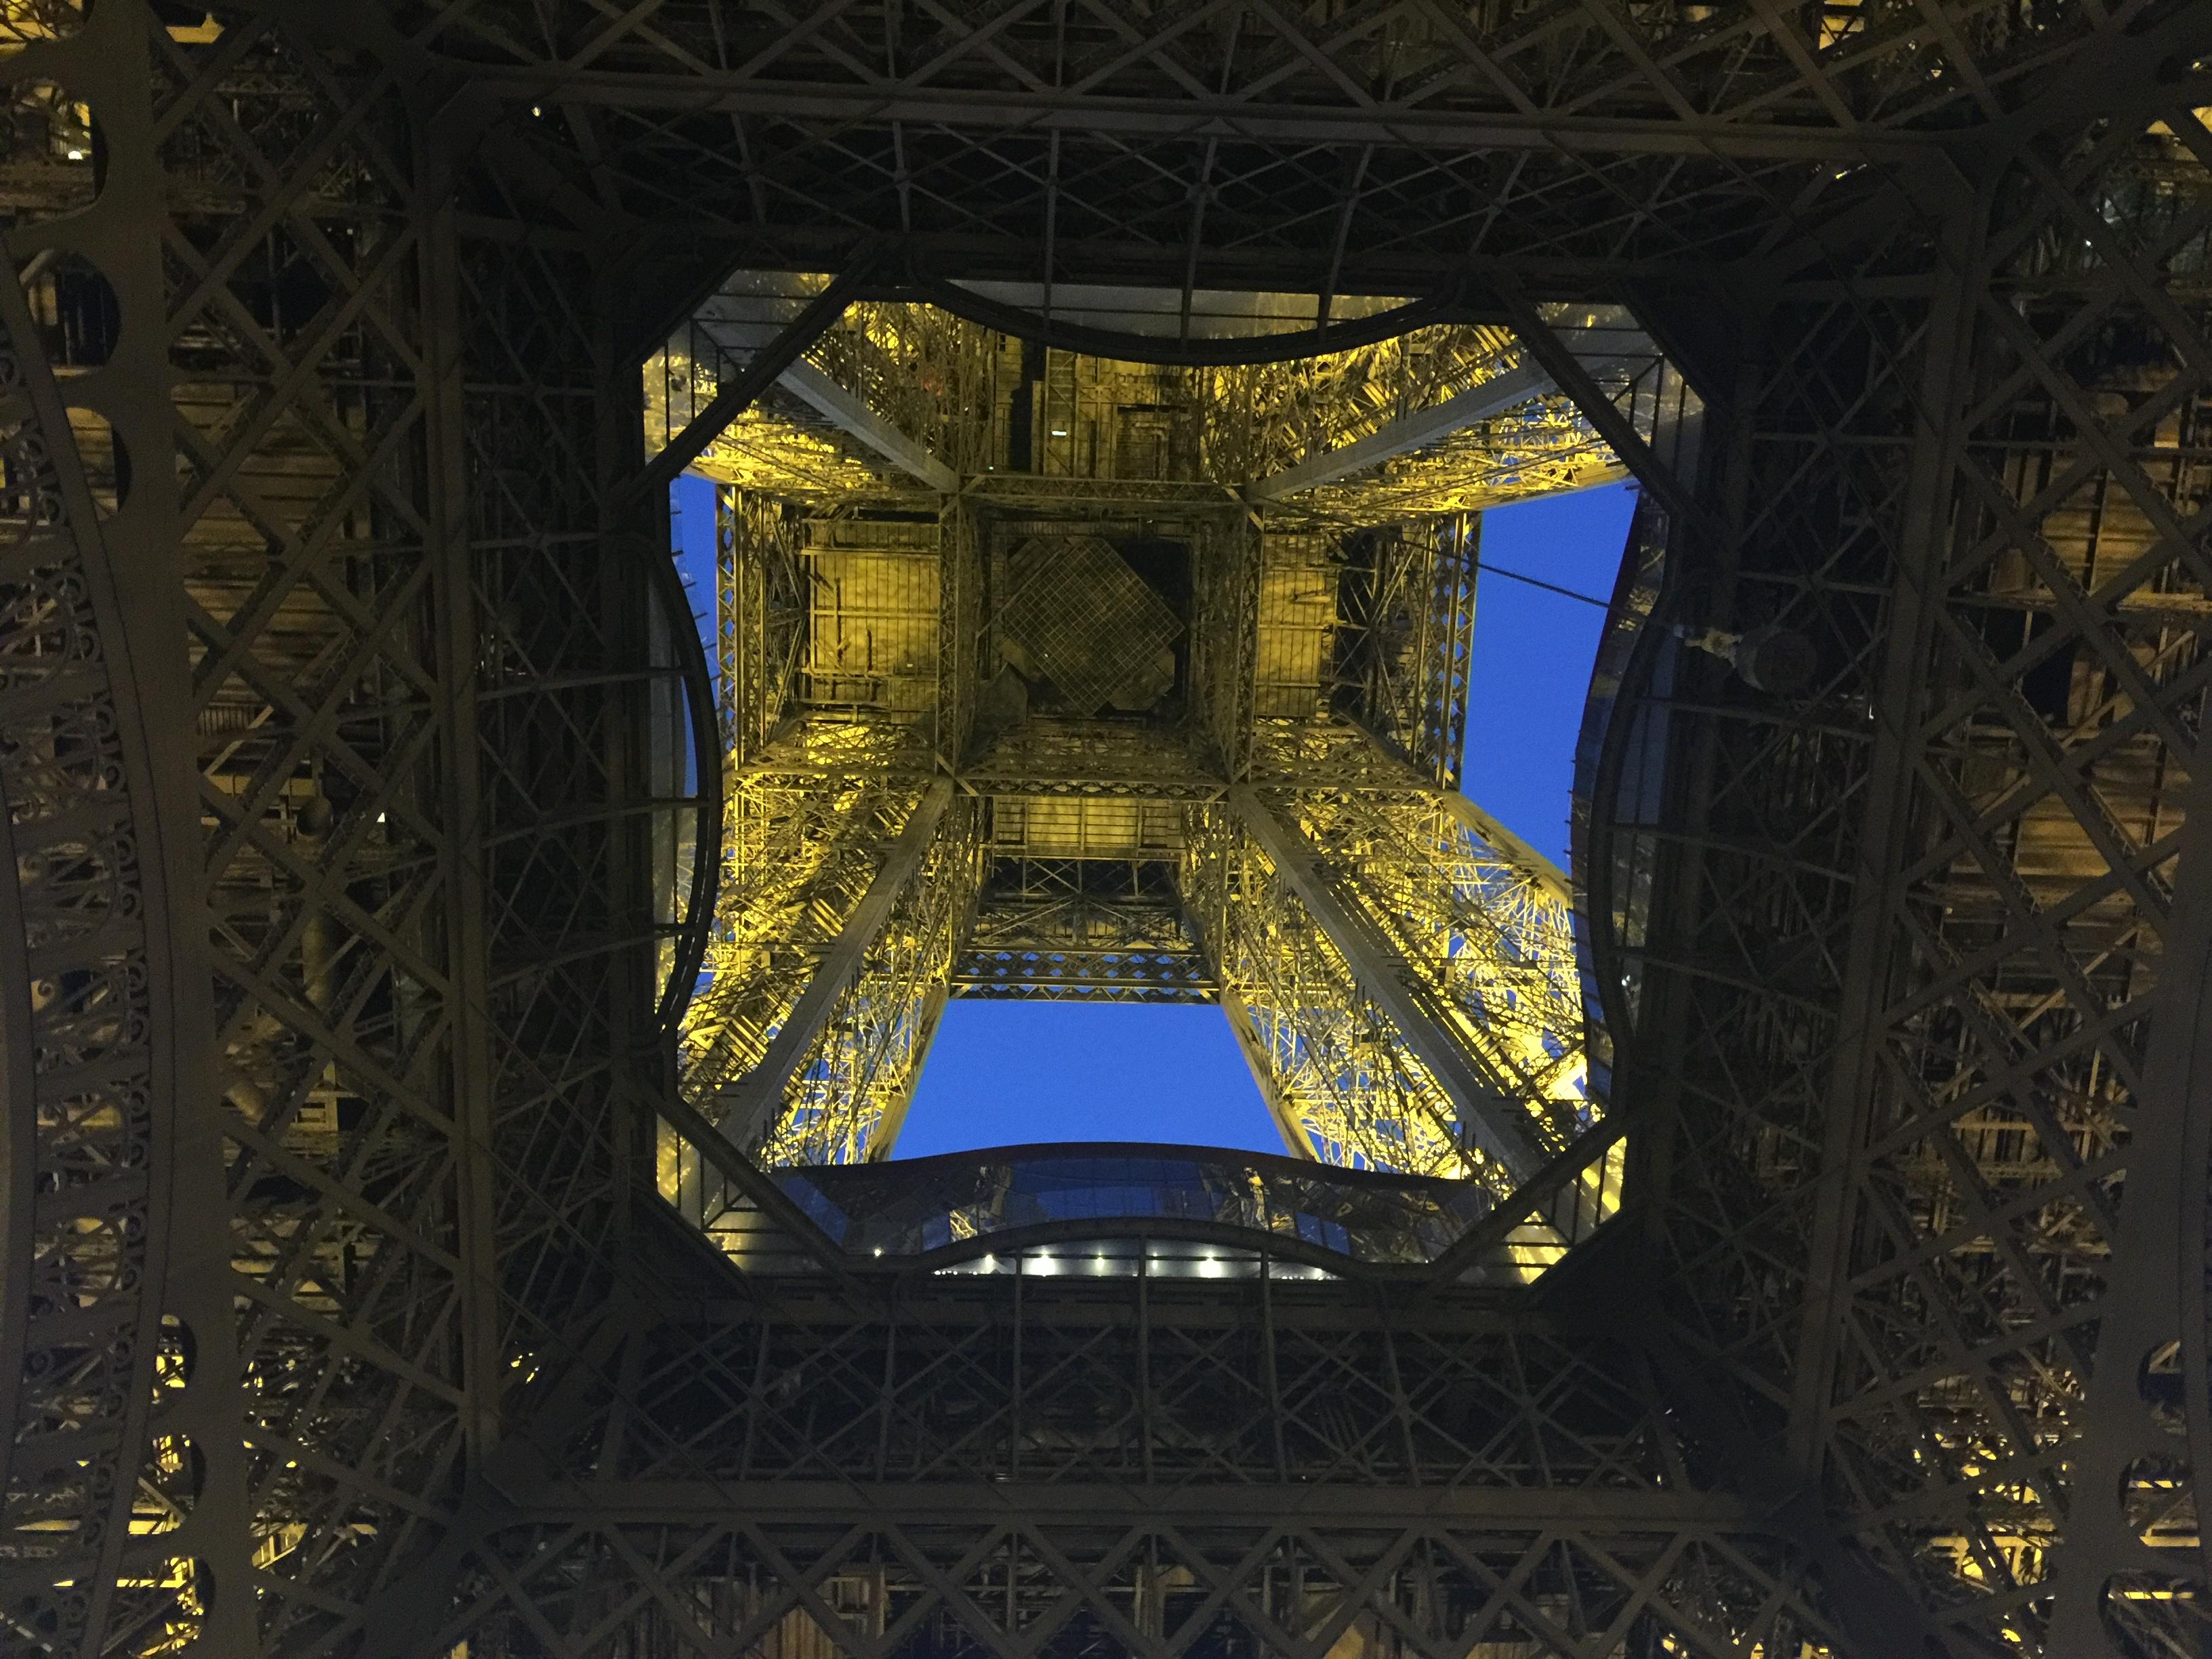 Looking up at the Eiffel Tower from the center